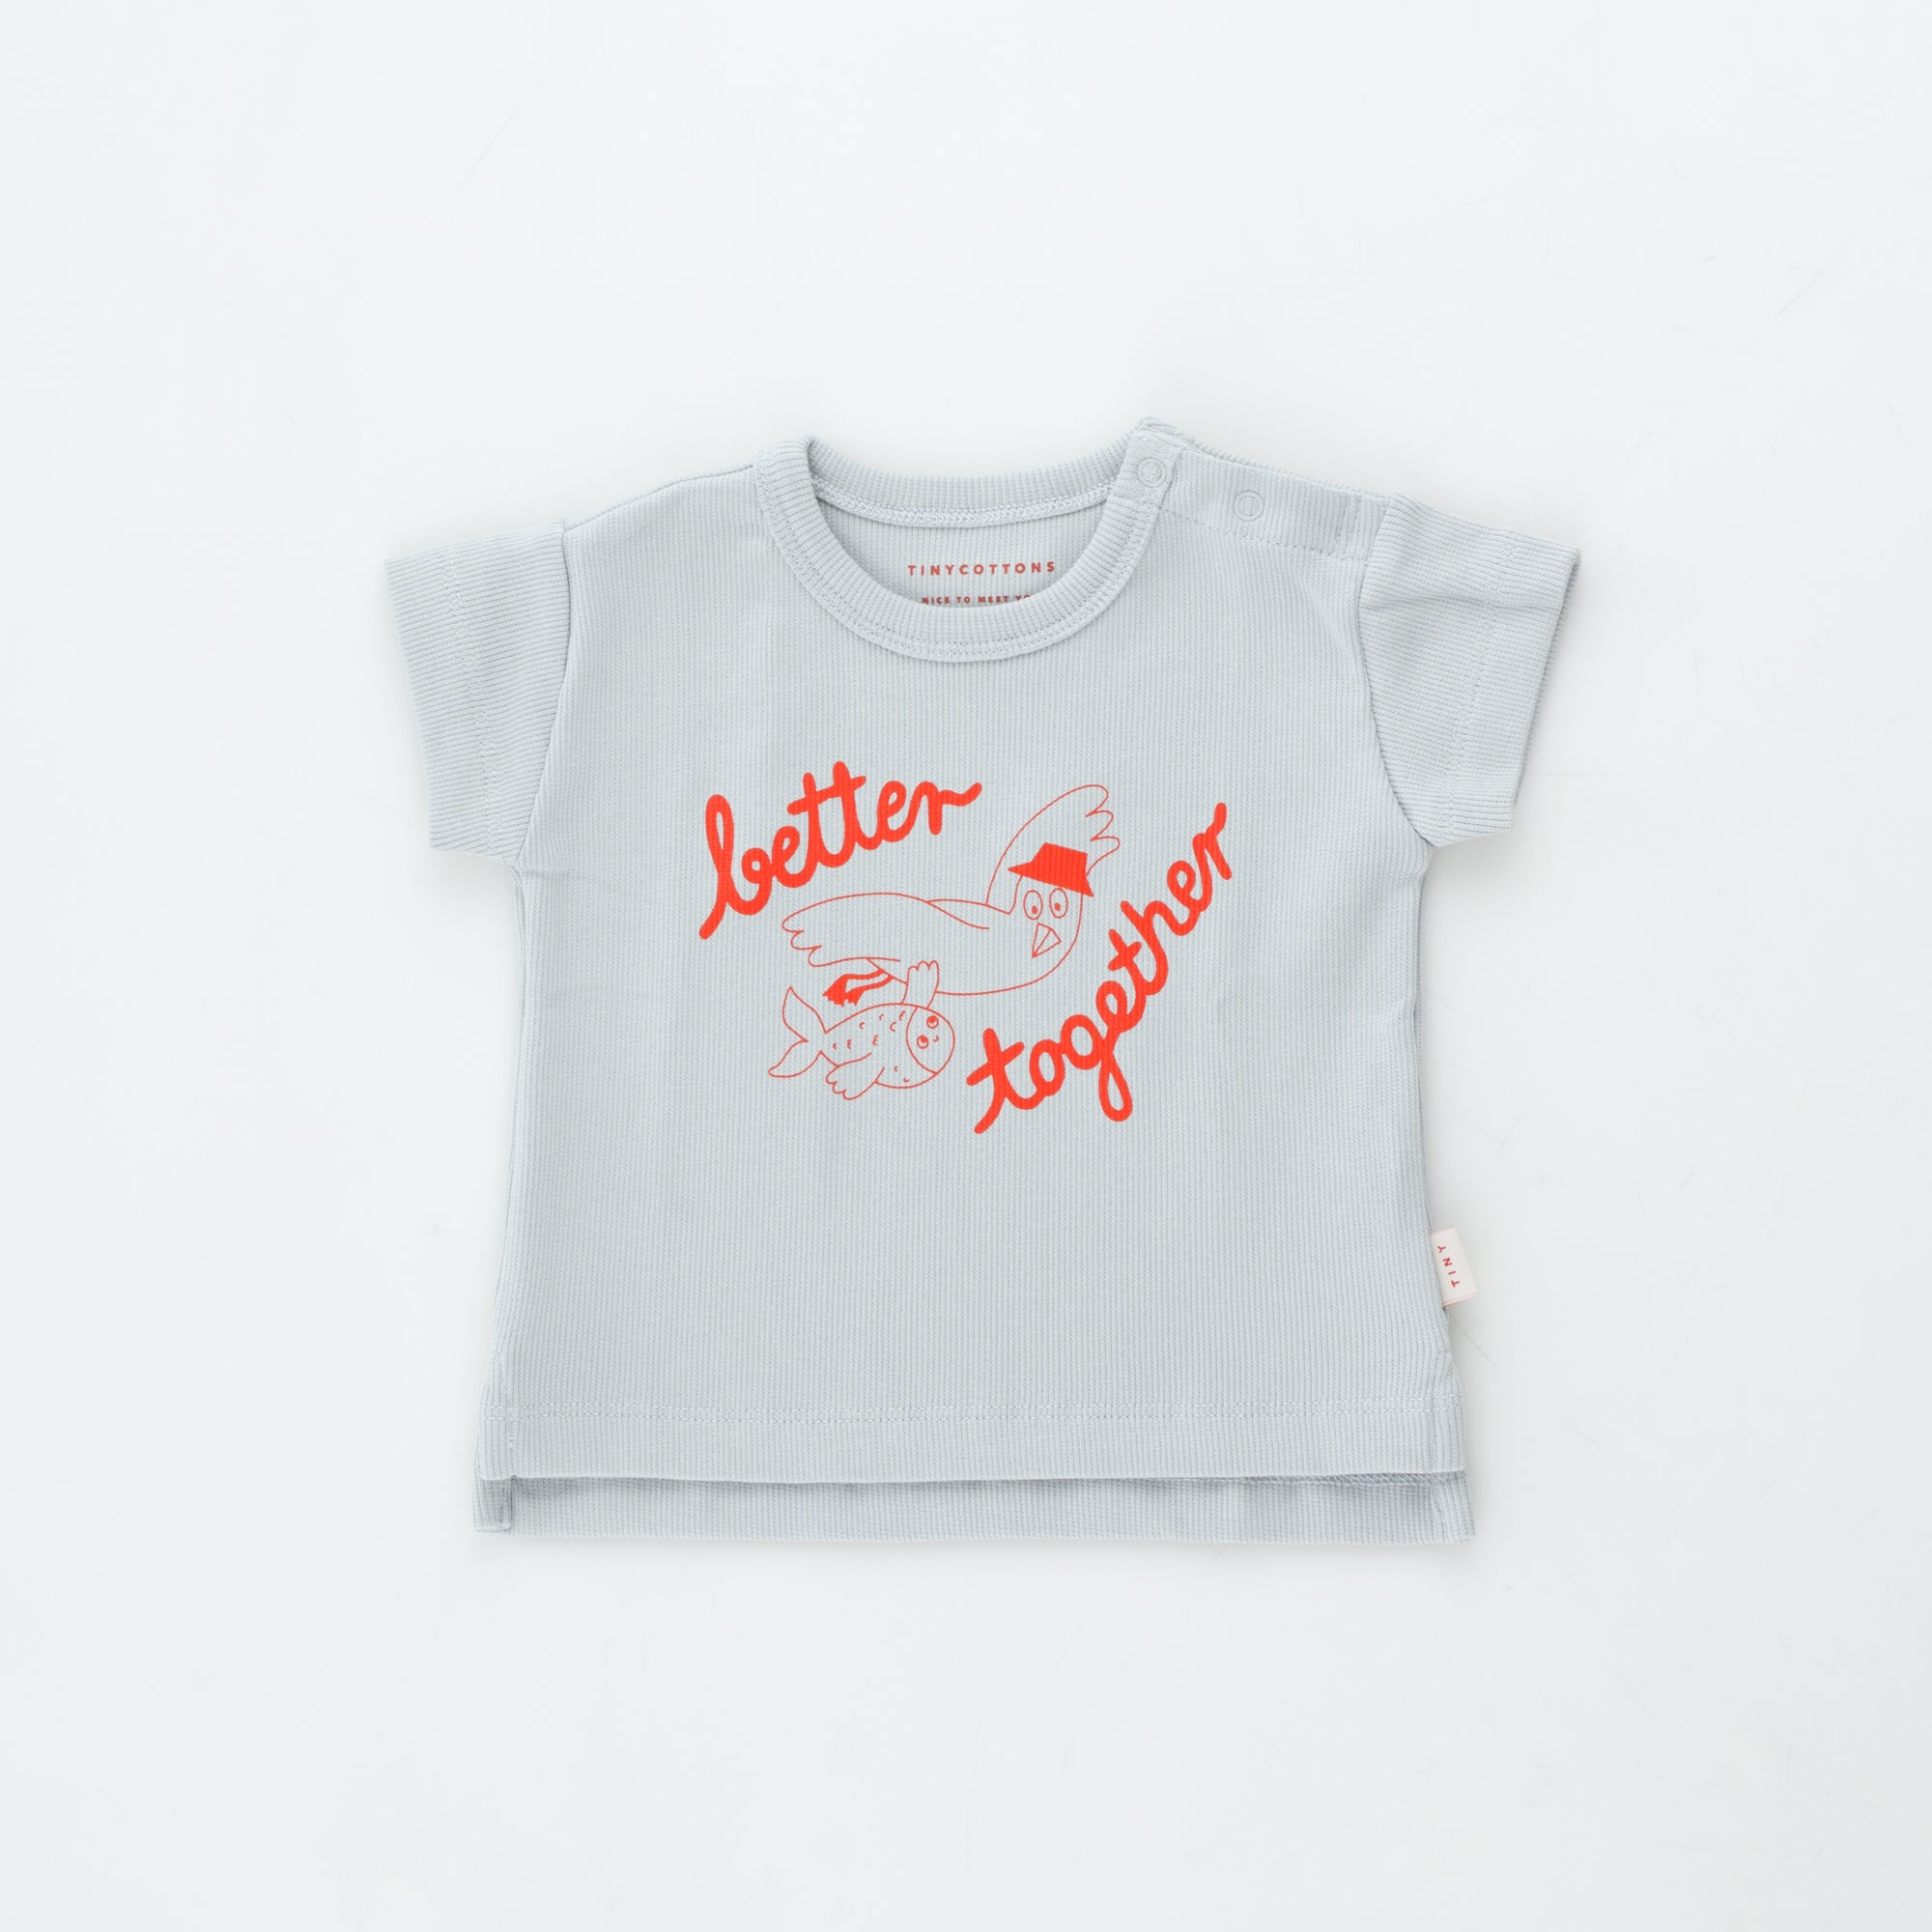 Better Together Baby Tee